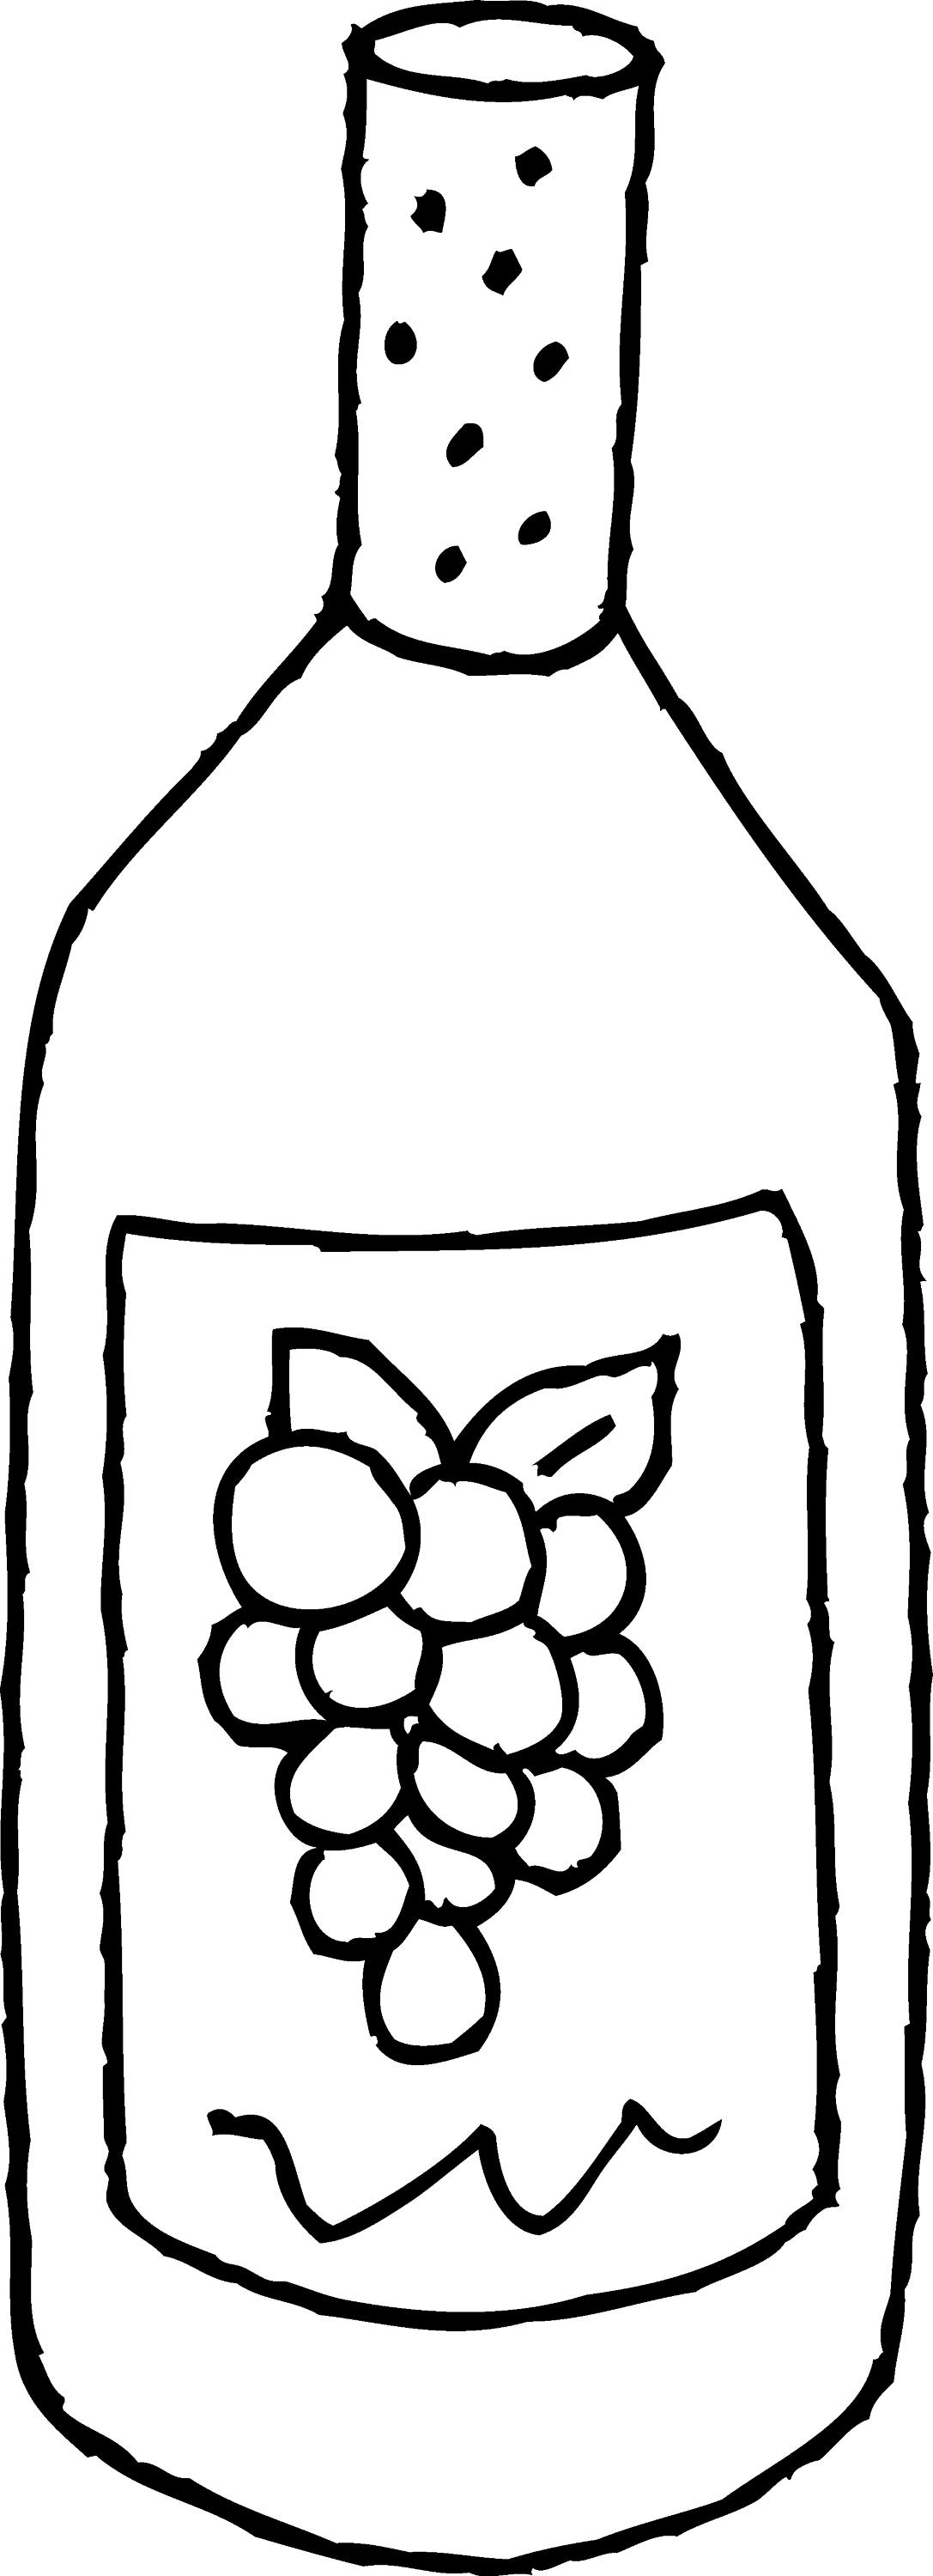 coloring pages of bottles disegno di bottiglia da colorare disegni da colorare e of pages coloring bottles